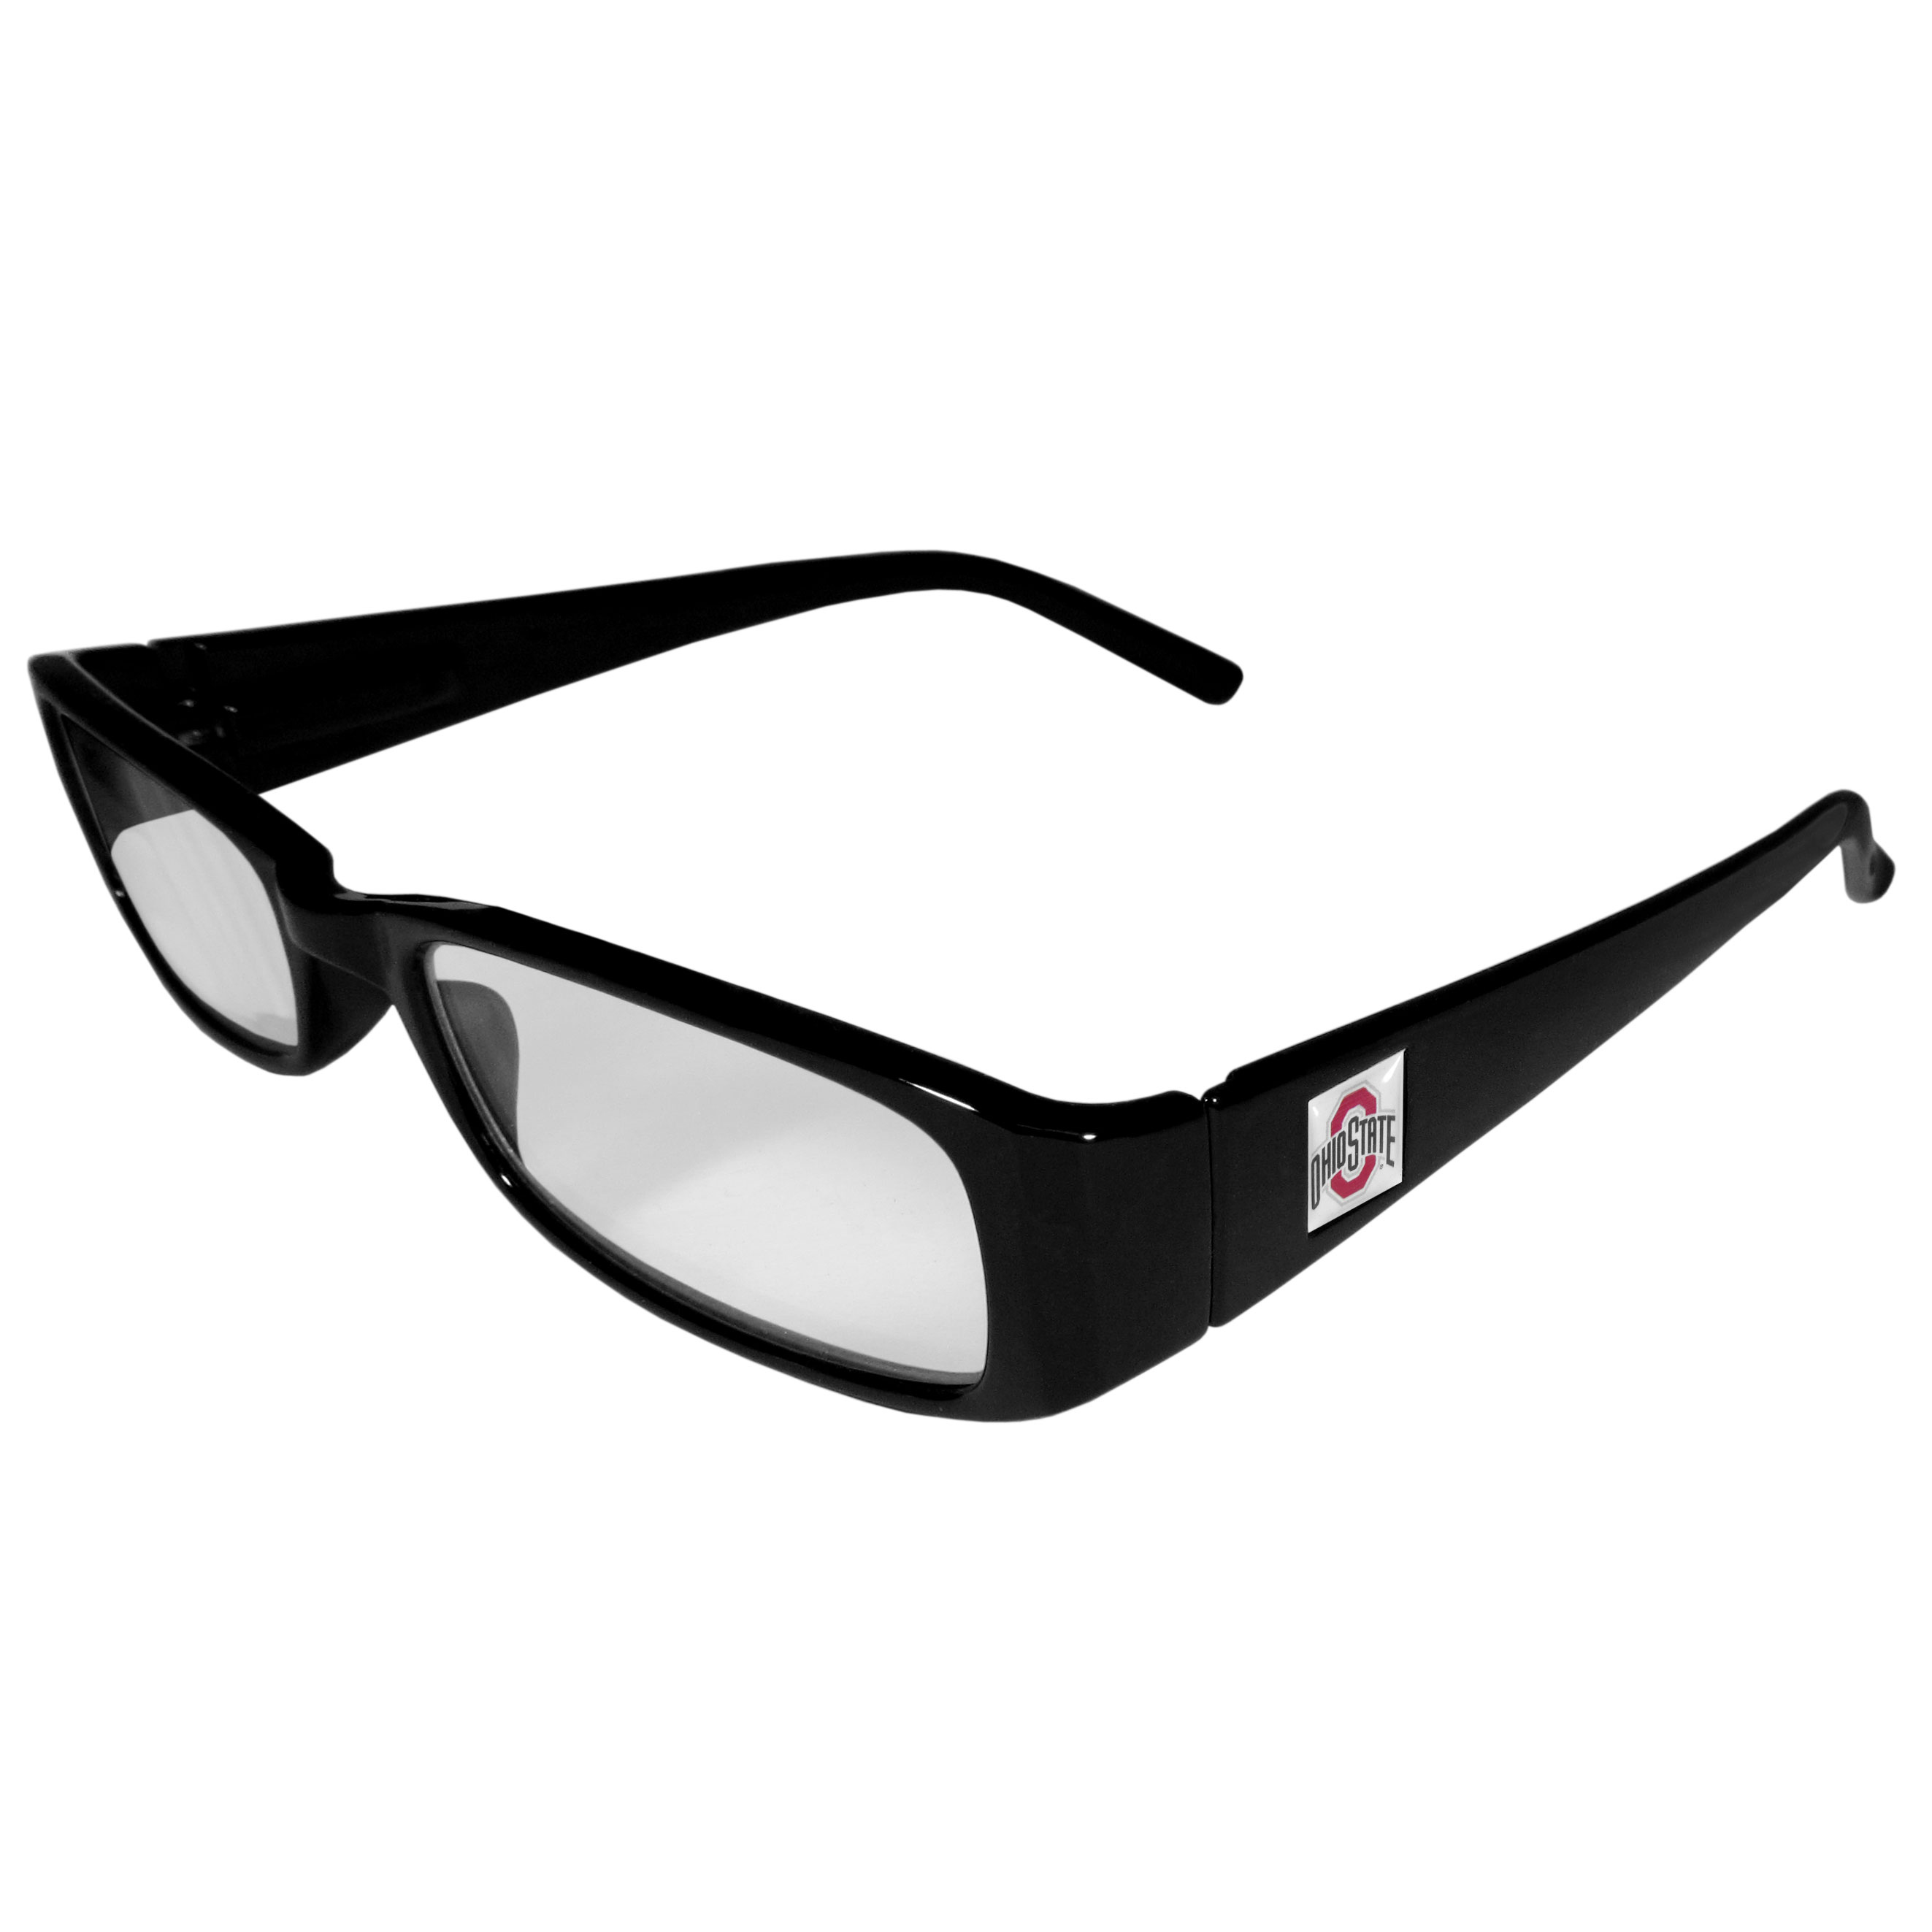 Ohio St. Buckeyes Black Reading Glasses +2.50 - Our Ohio St. Buckeyes reading glasses are 5.25 inches wide and feature the team logo on each arm. Magnification Power 2.50